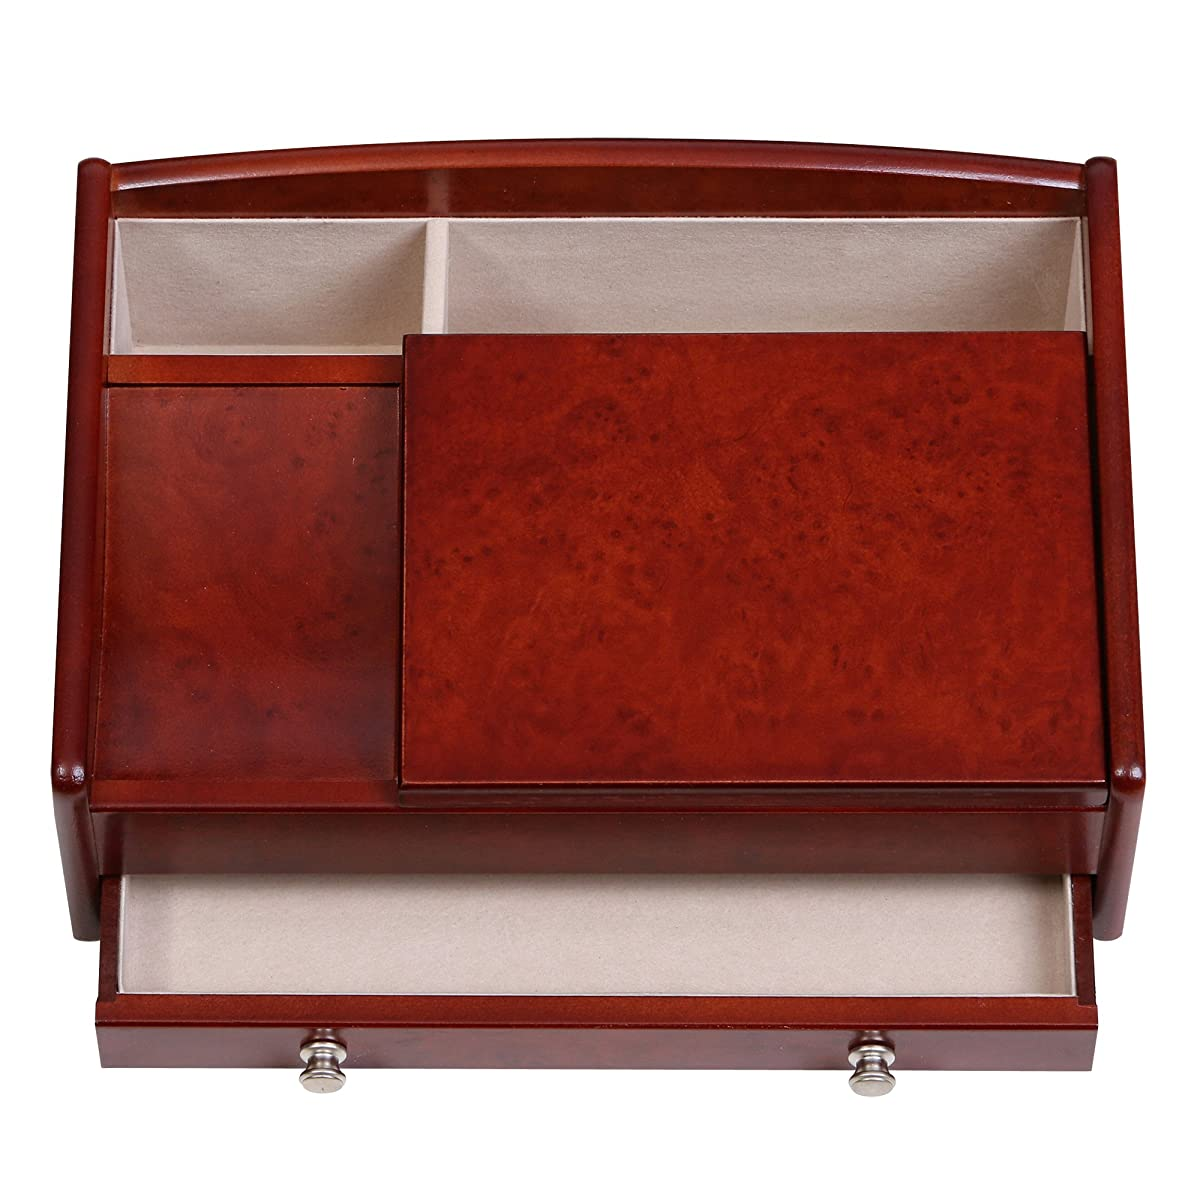 Mele & Co. Davin Mens Wooden Dresser Top Valet in Dark Burlwood Walnut Finish